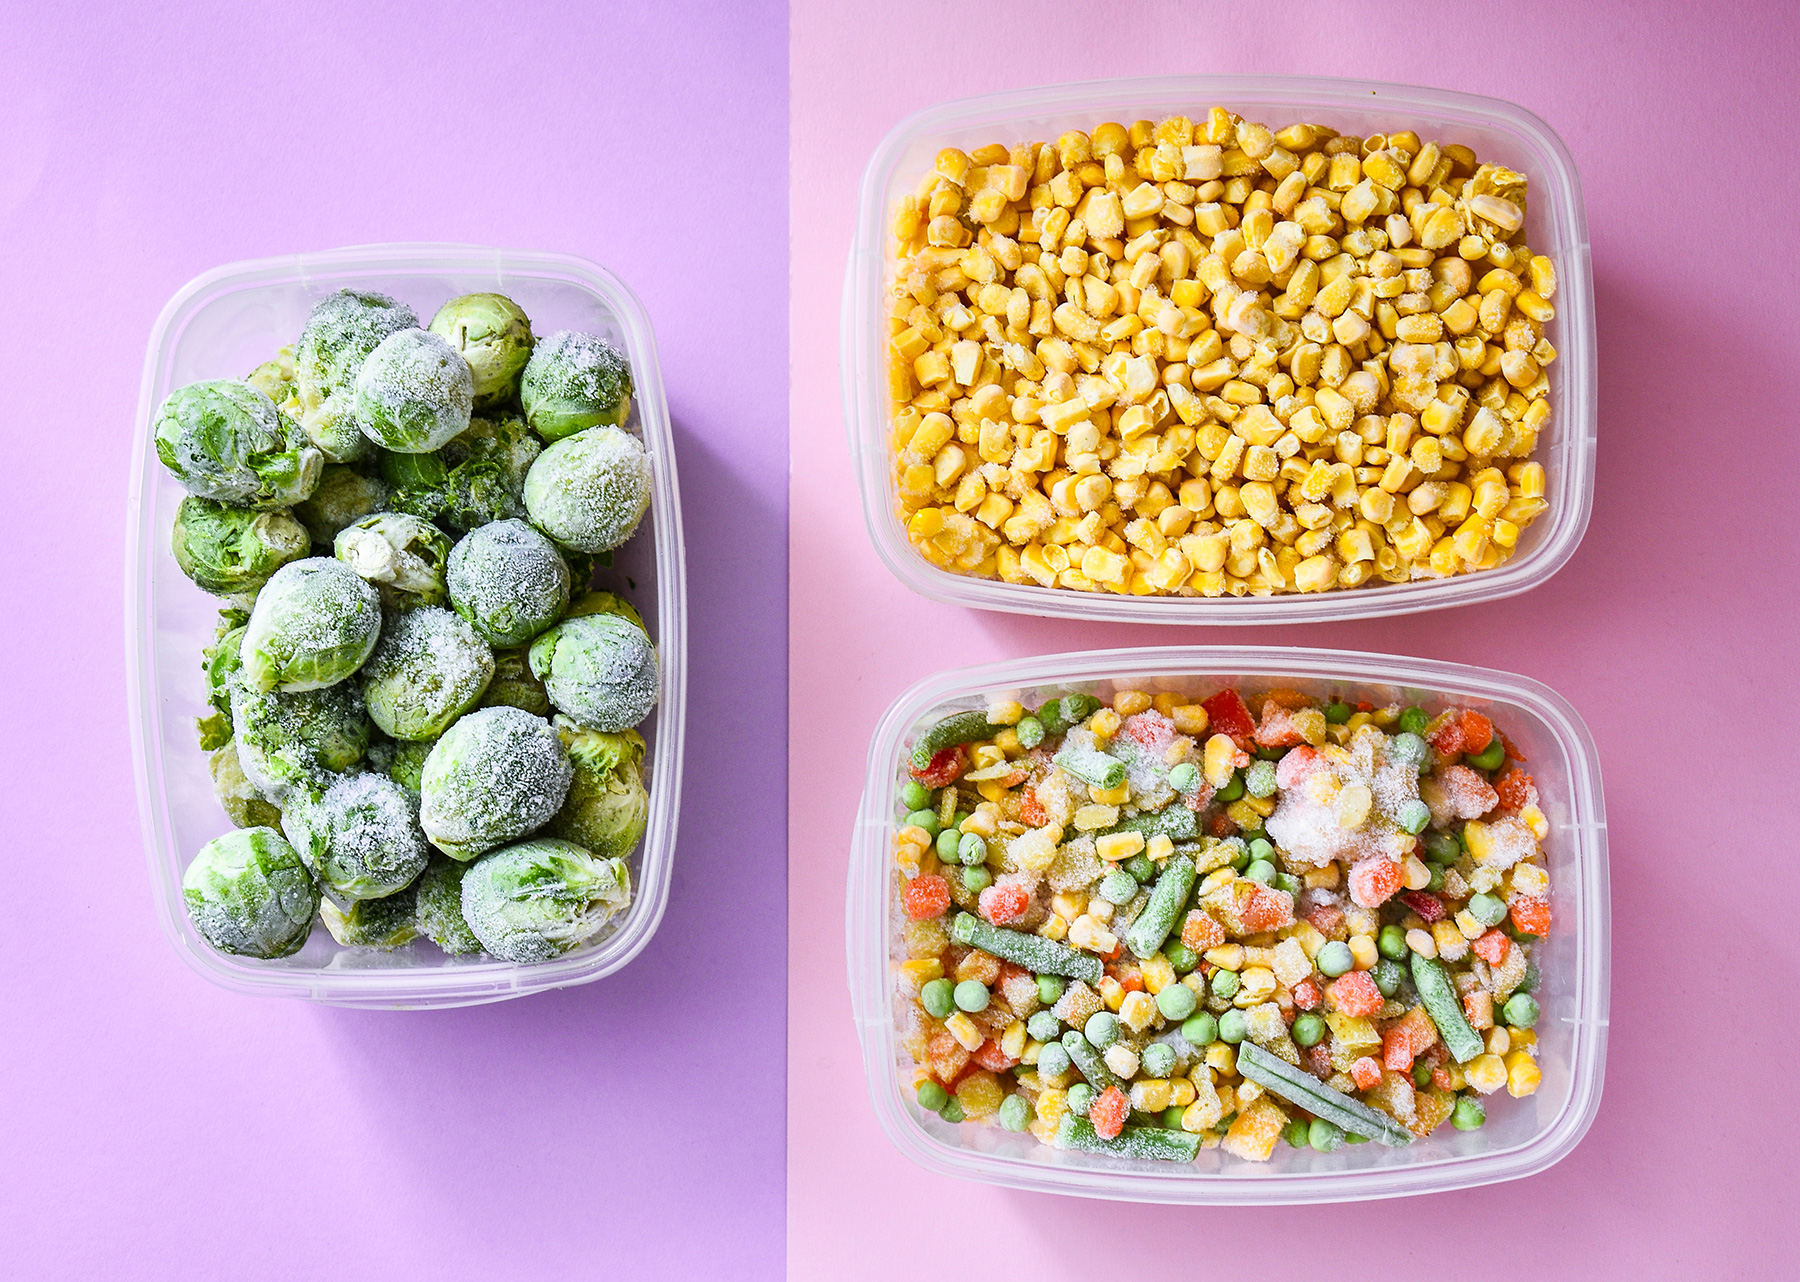 Freezer Organization Ideas: frozen vegetables in containers